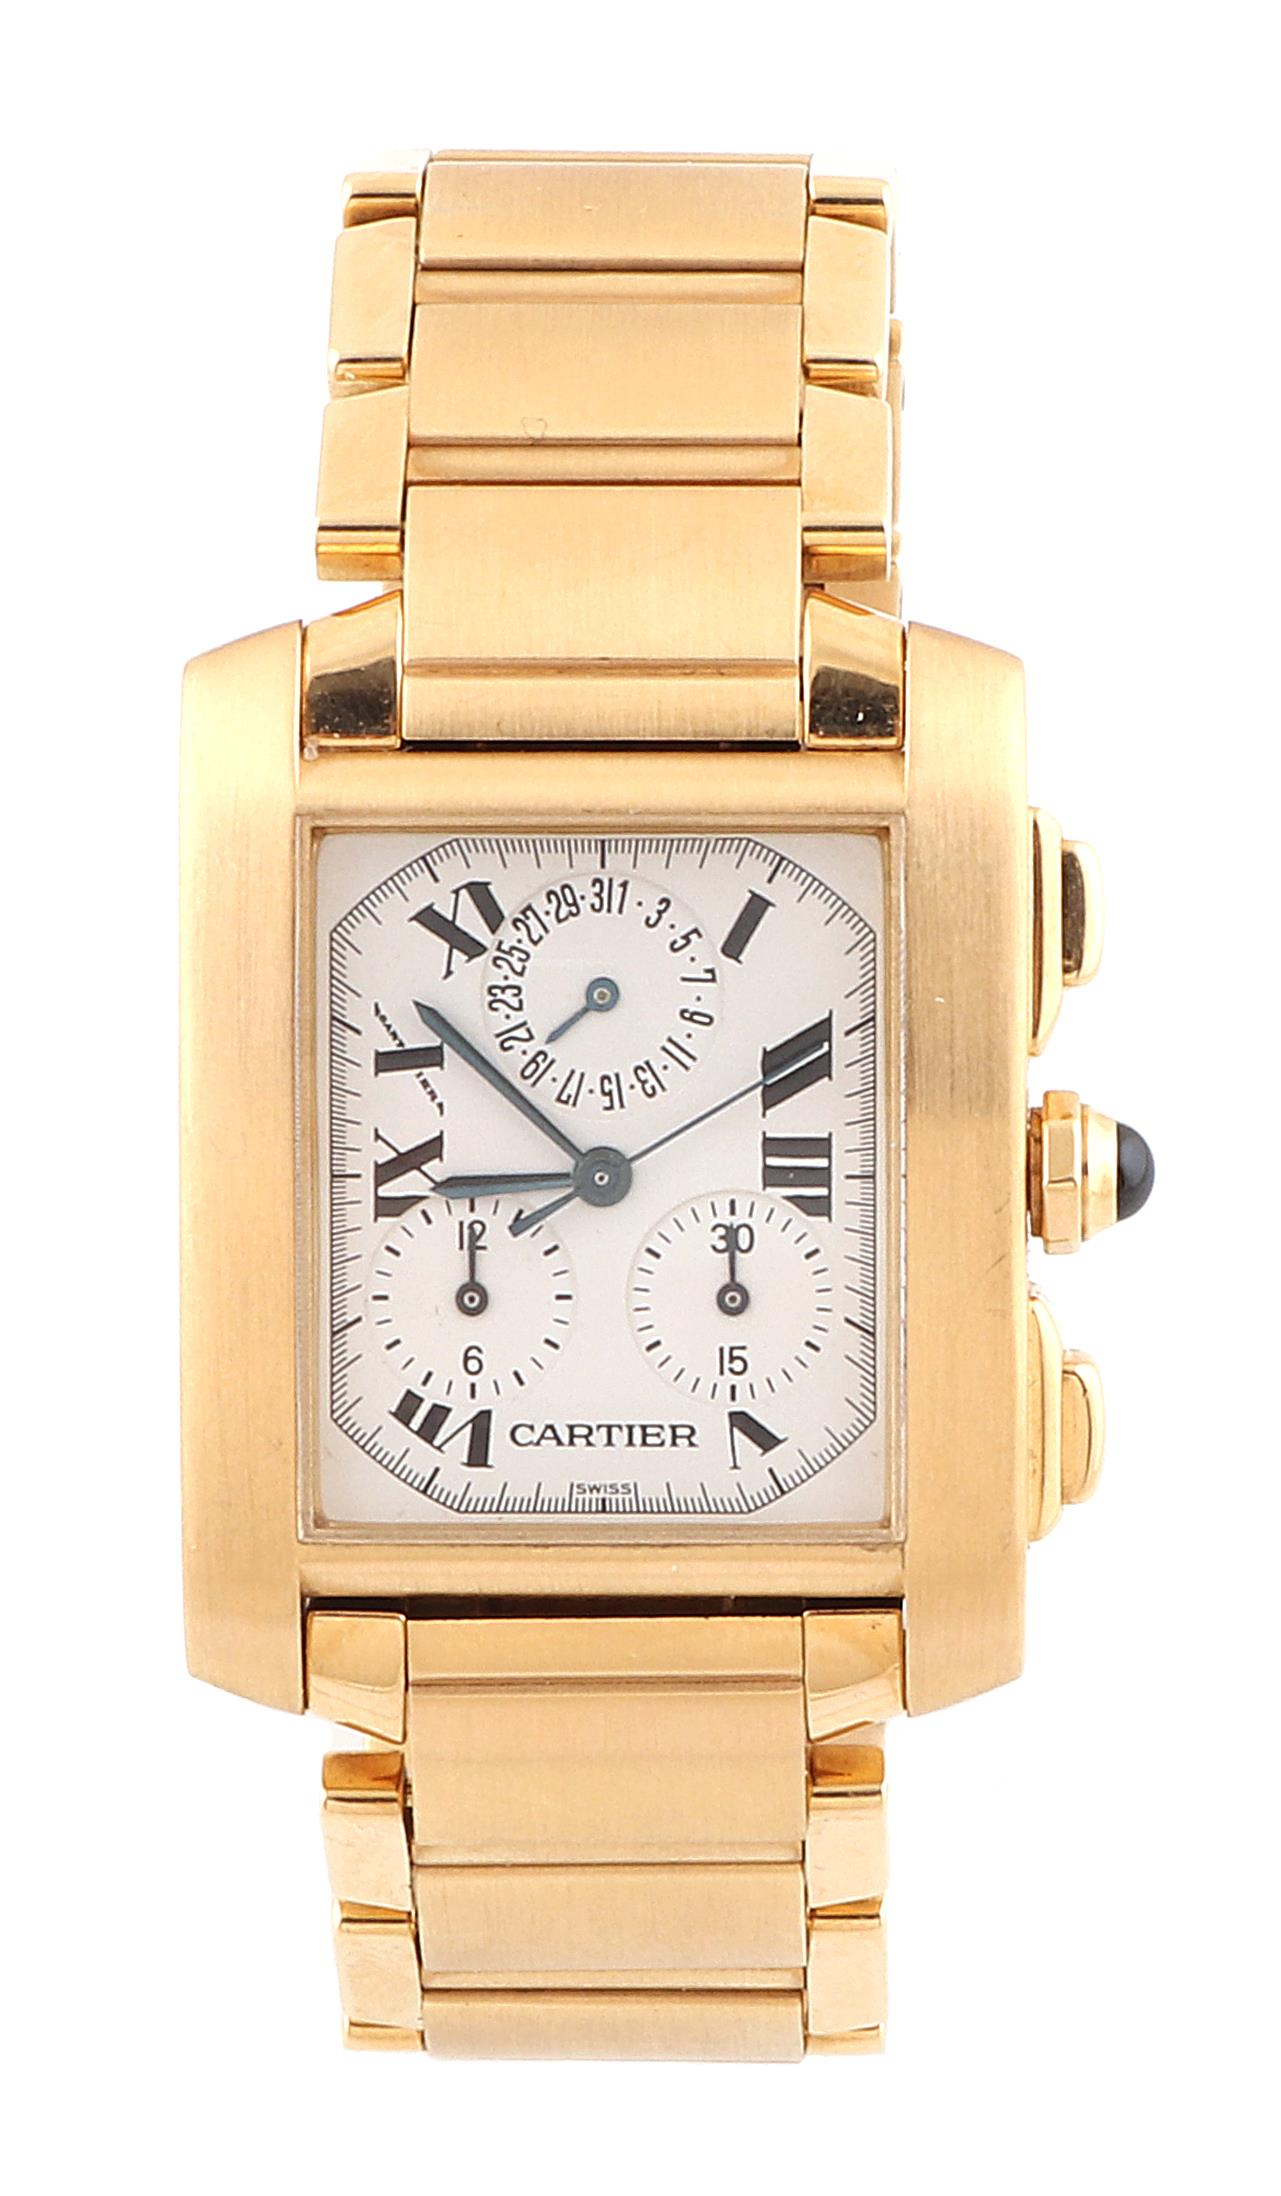 Cartier Tank Francaise Chronograph, gold 750, Starting bid €6,000